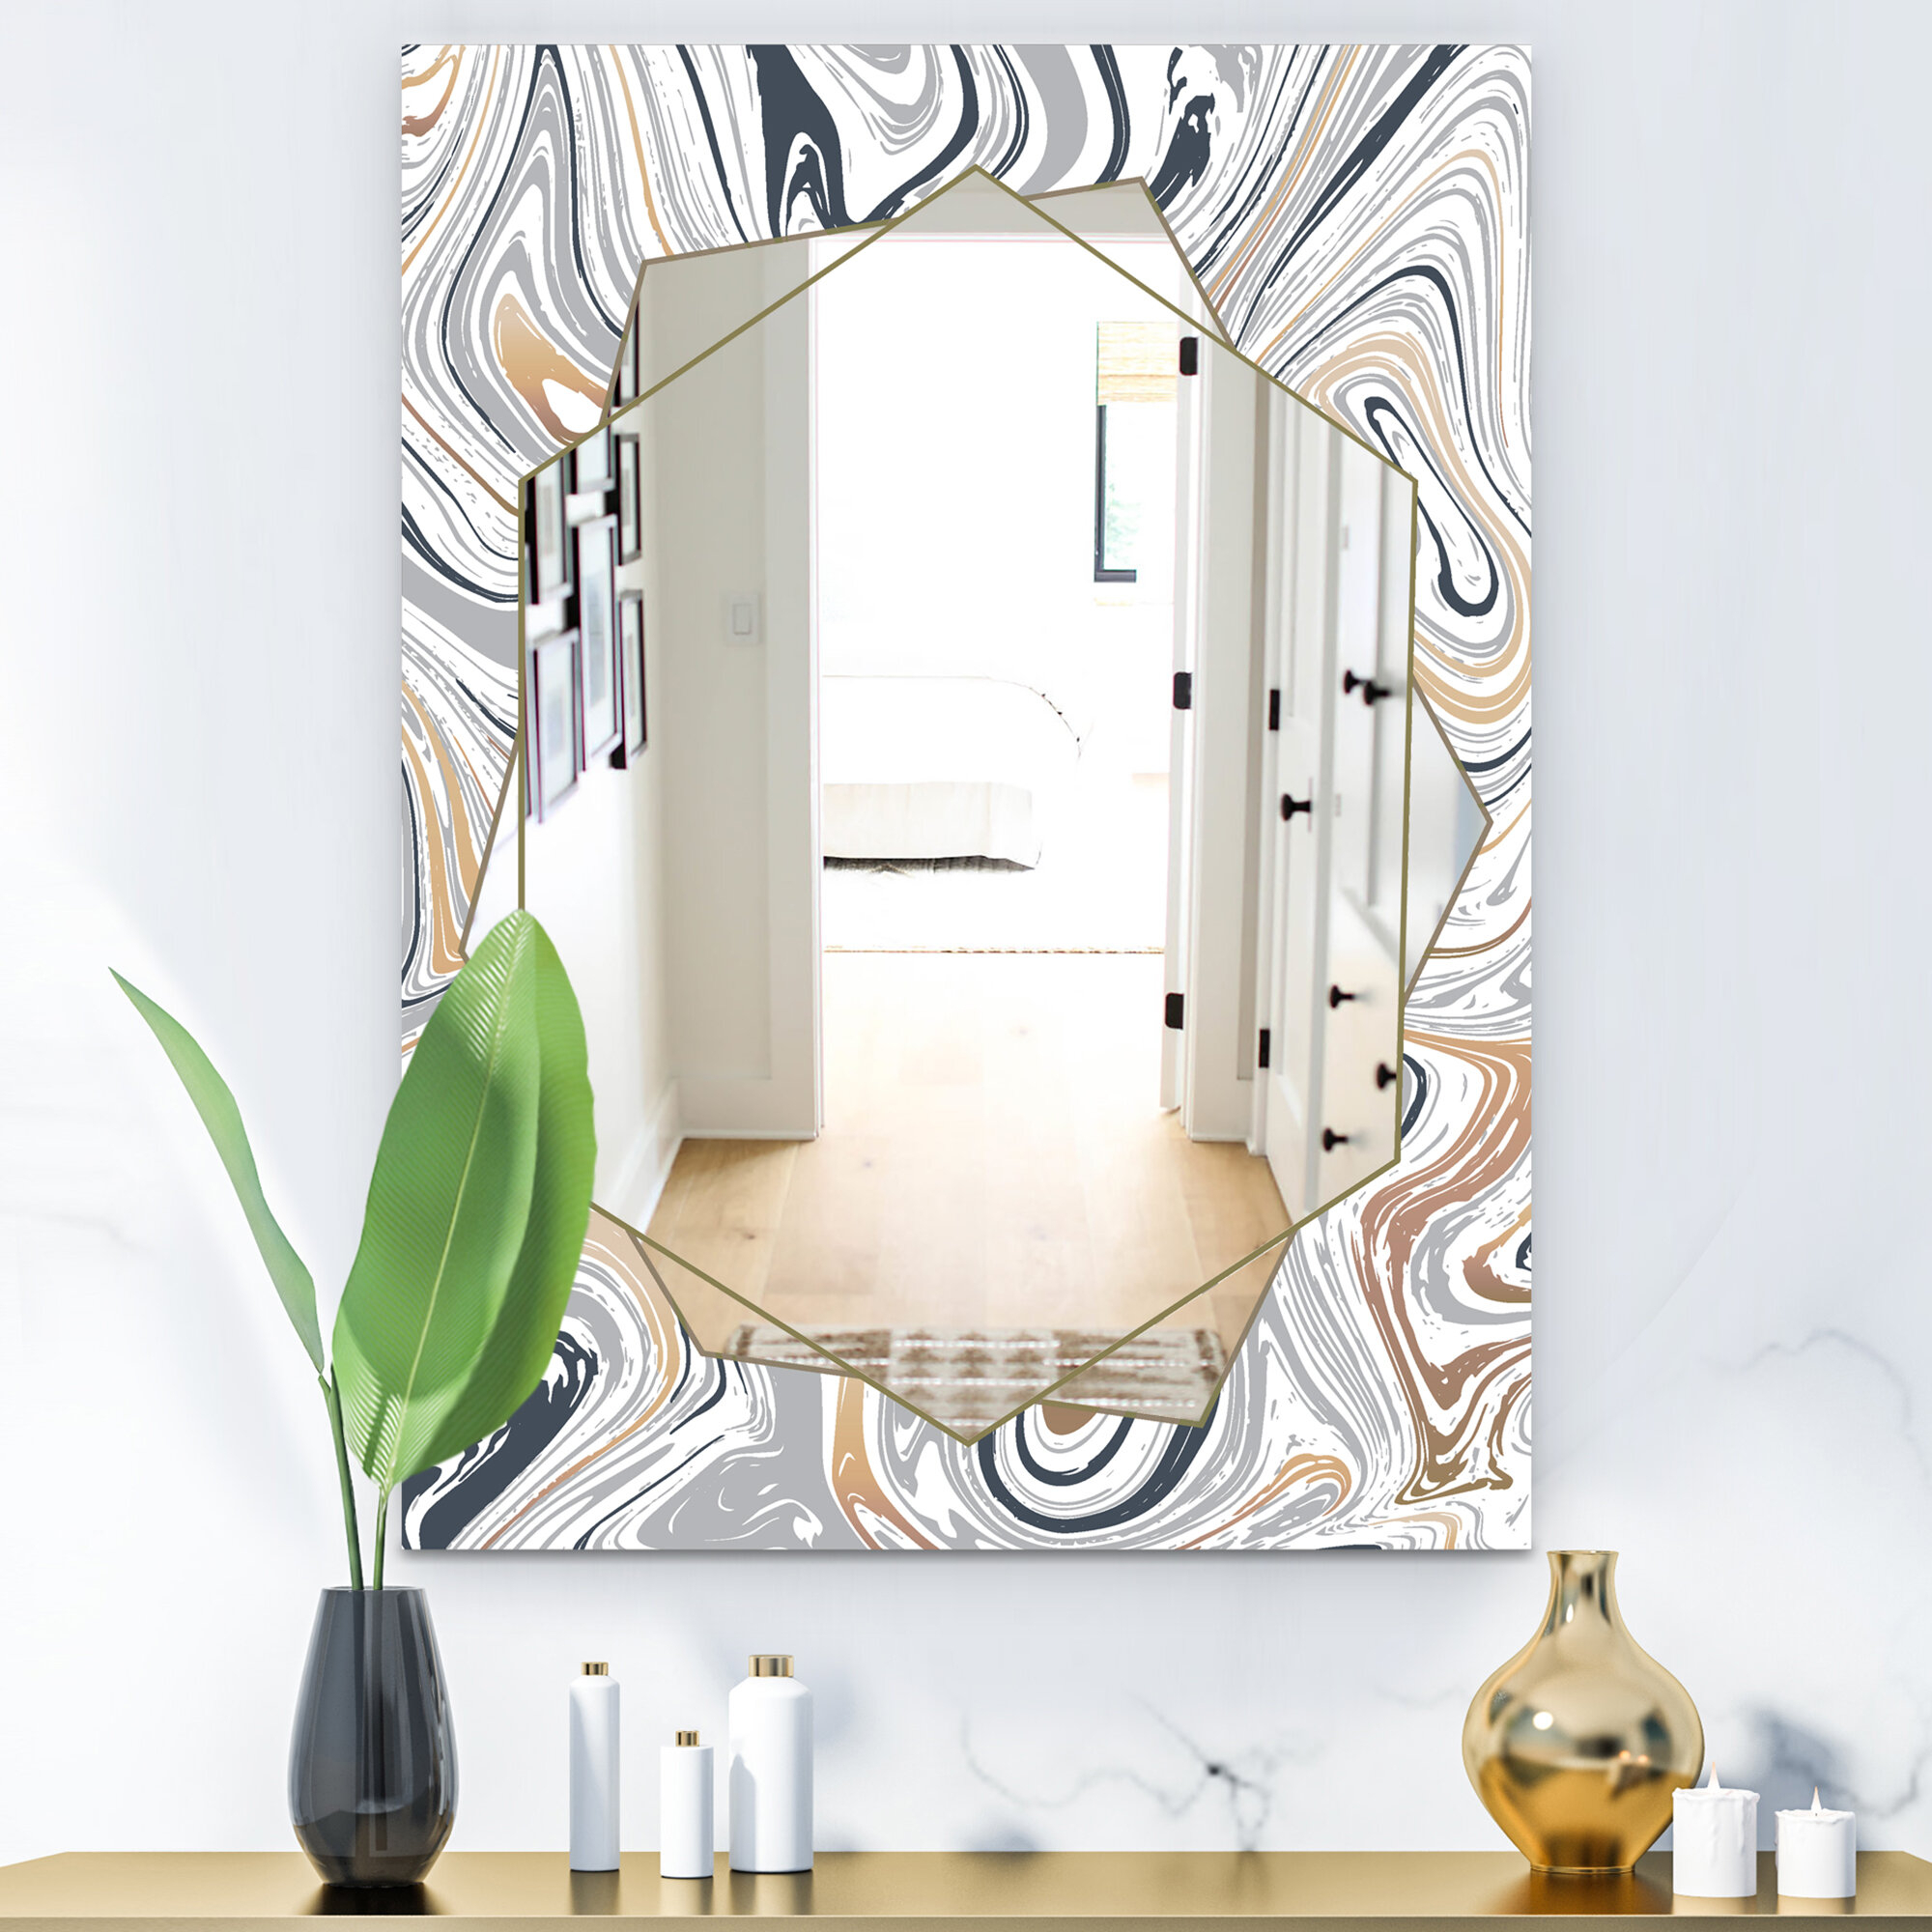 Marbled Diamond Traditional Frameless Bathroom Mirror Regarding Traditional Frameless Diamond Wall Mirrors (Image 12 of 20)